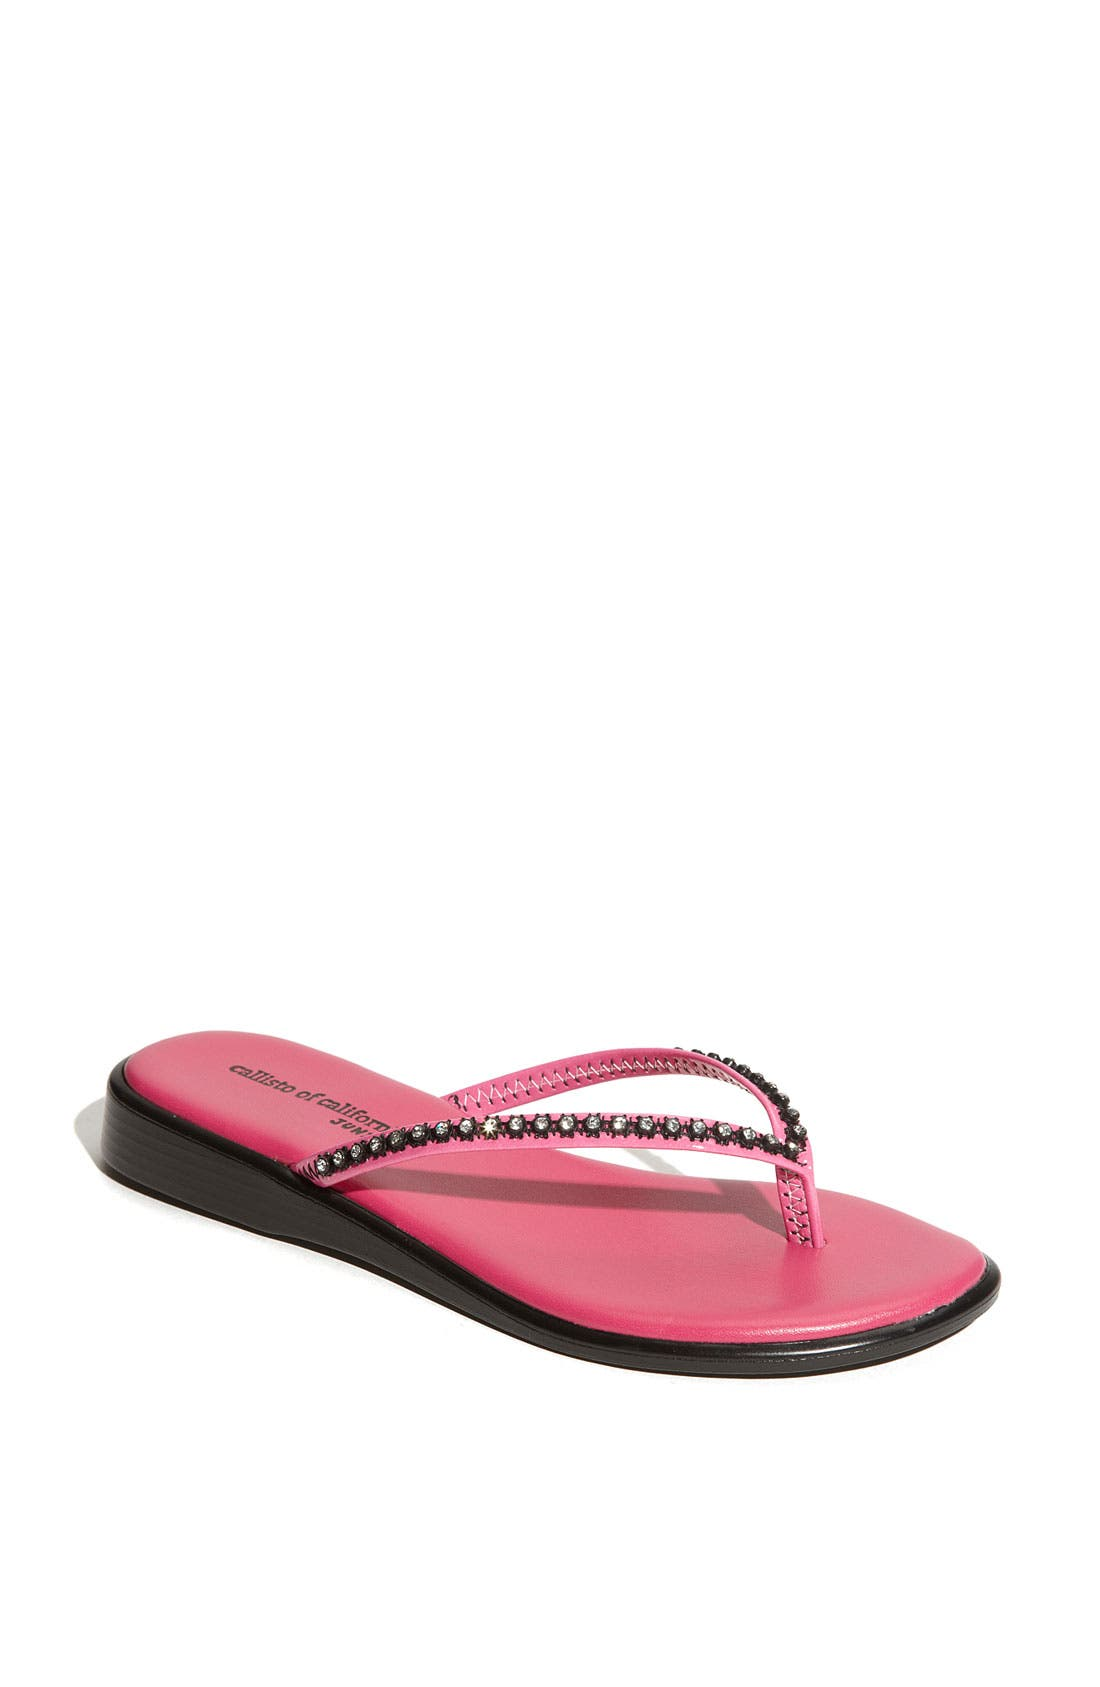 Main Image - Callisto 'Girly' Flip Flop (Toddler, Little Kid & Big Kid)